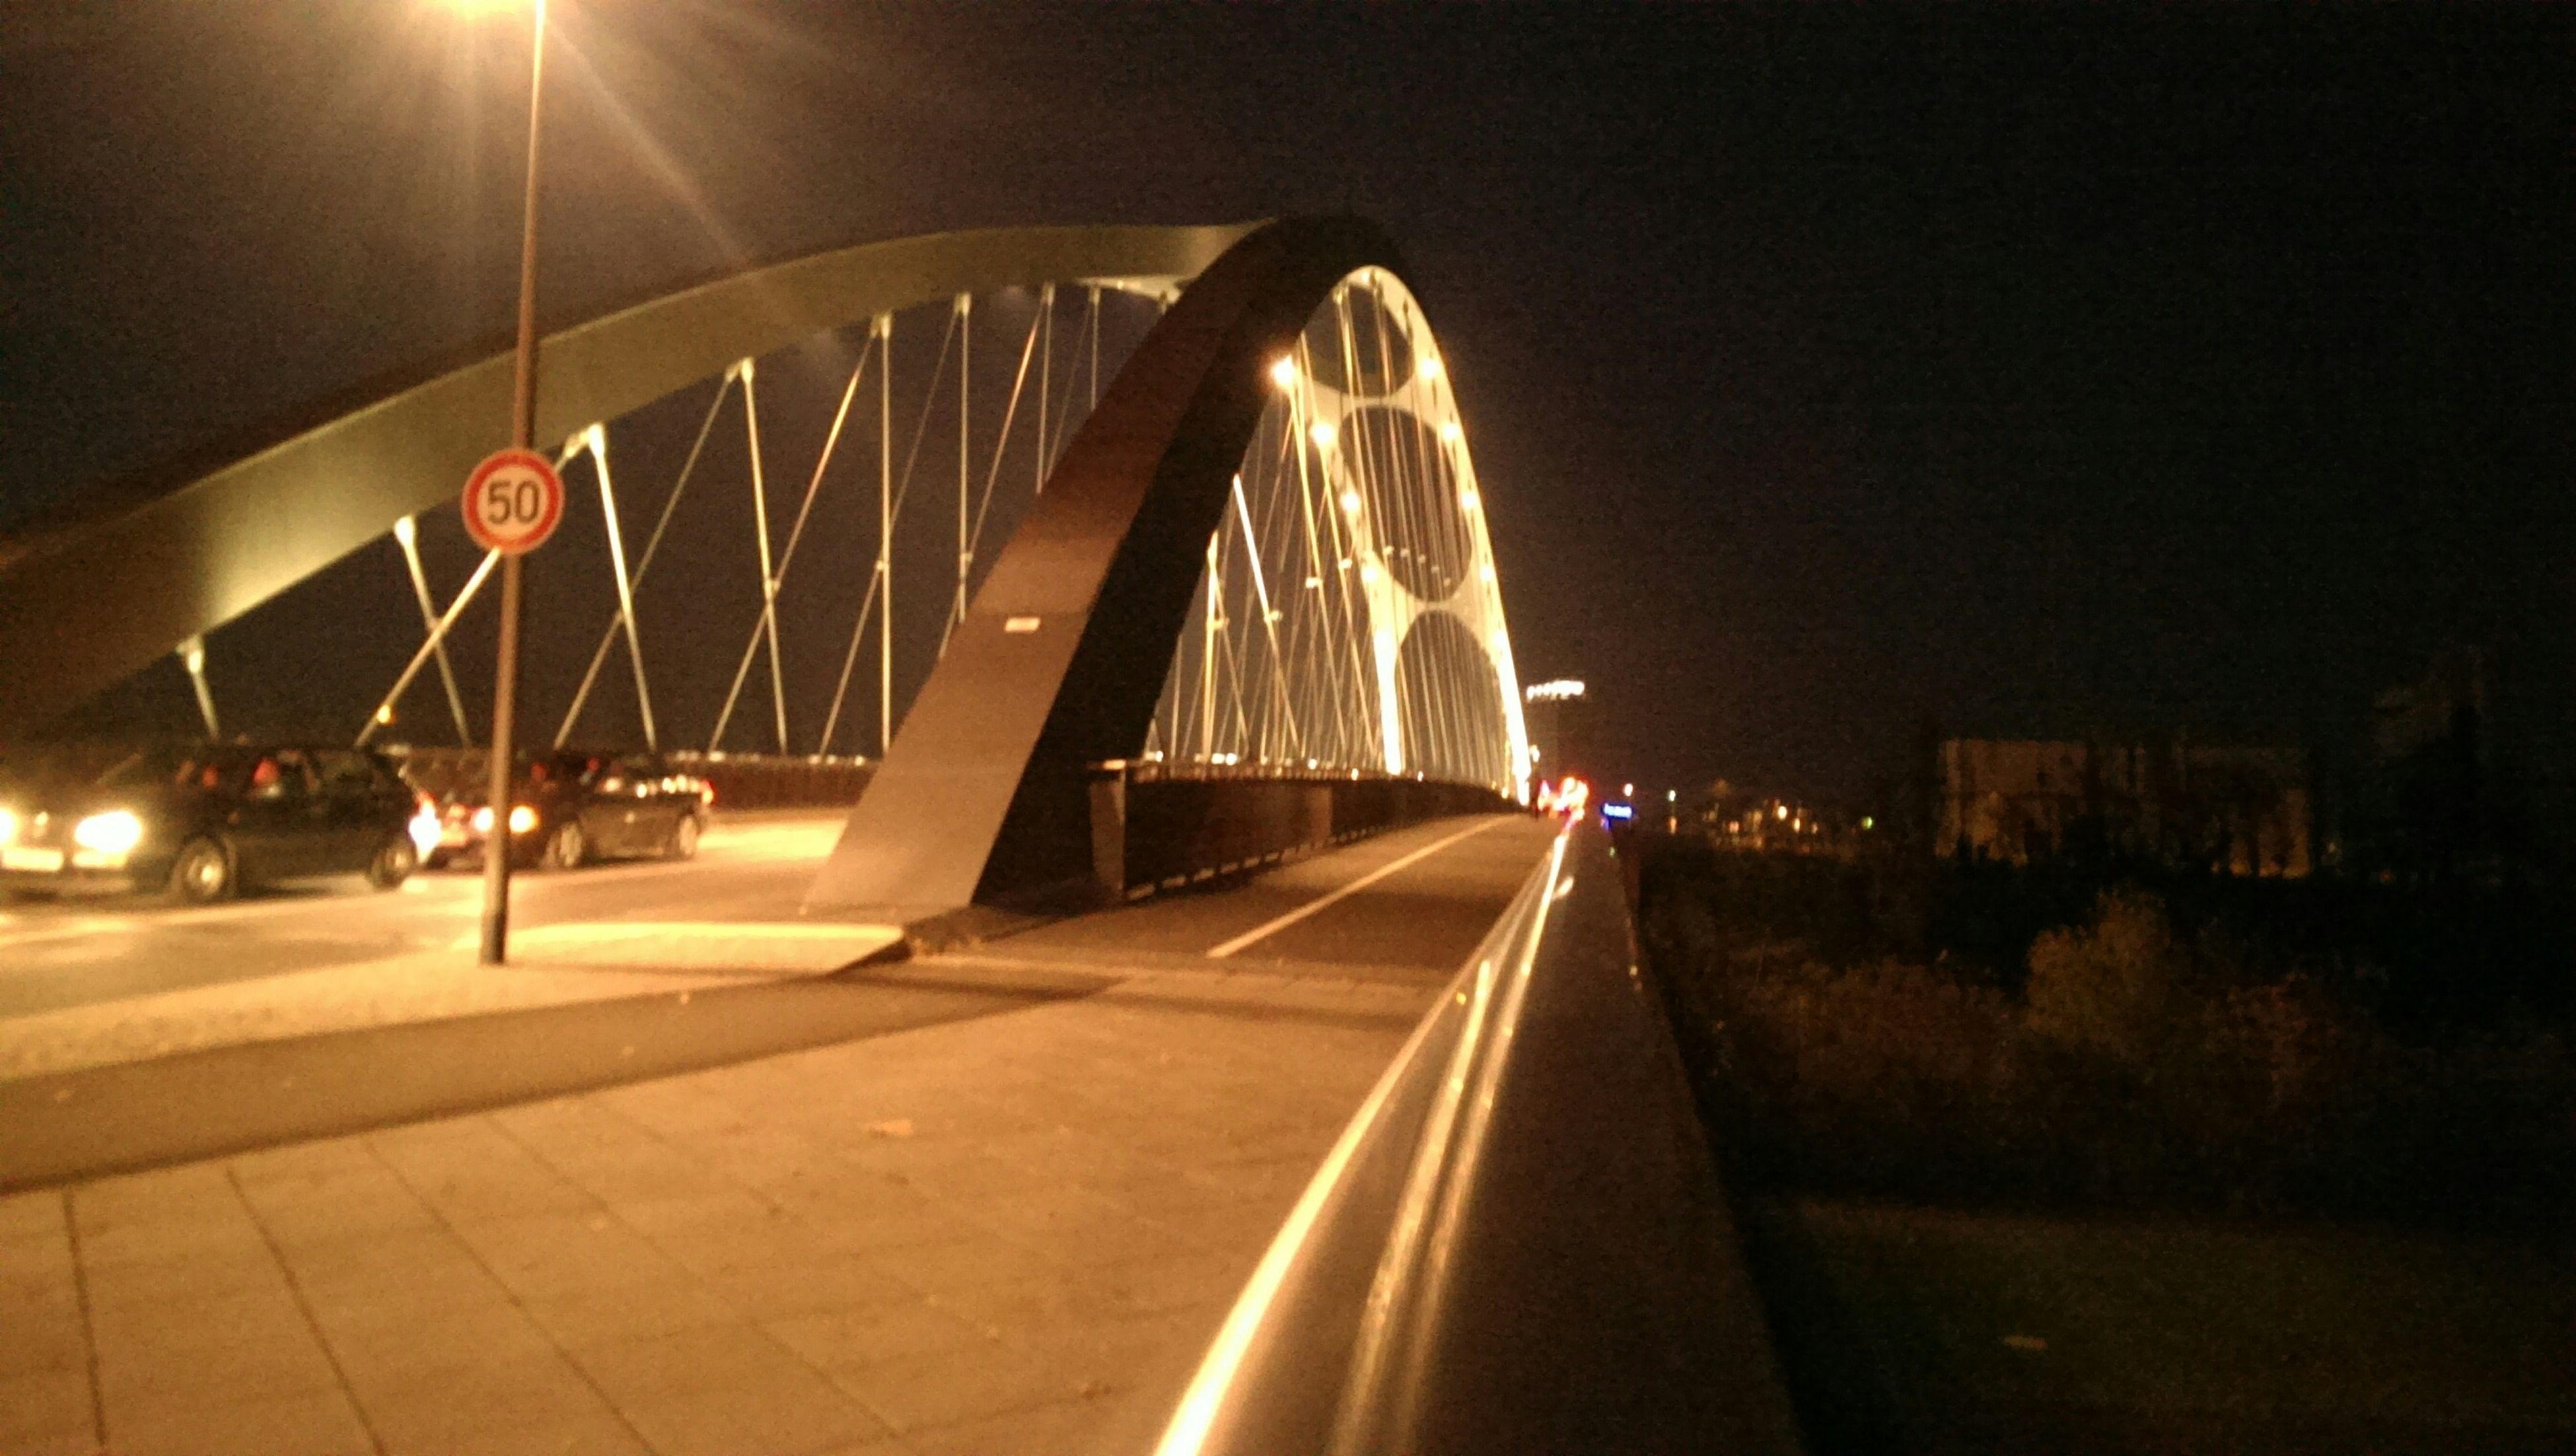 transportation, illuminated, night, the way forward, built structure, architecture, diminishing perspective, metal, vanishing point, bridge - man made structure, connection, engineering, lighting equipment, indoors, railing, travel, mode of transport, incidental people, road, railroad track